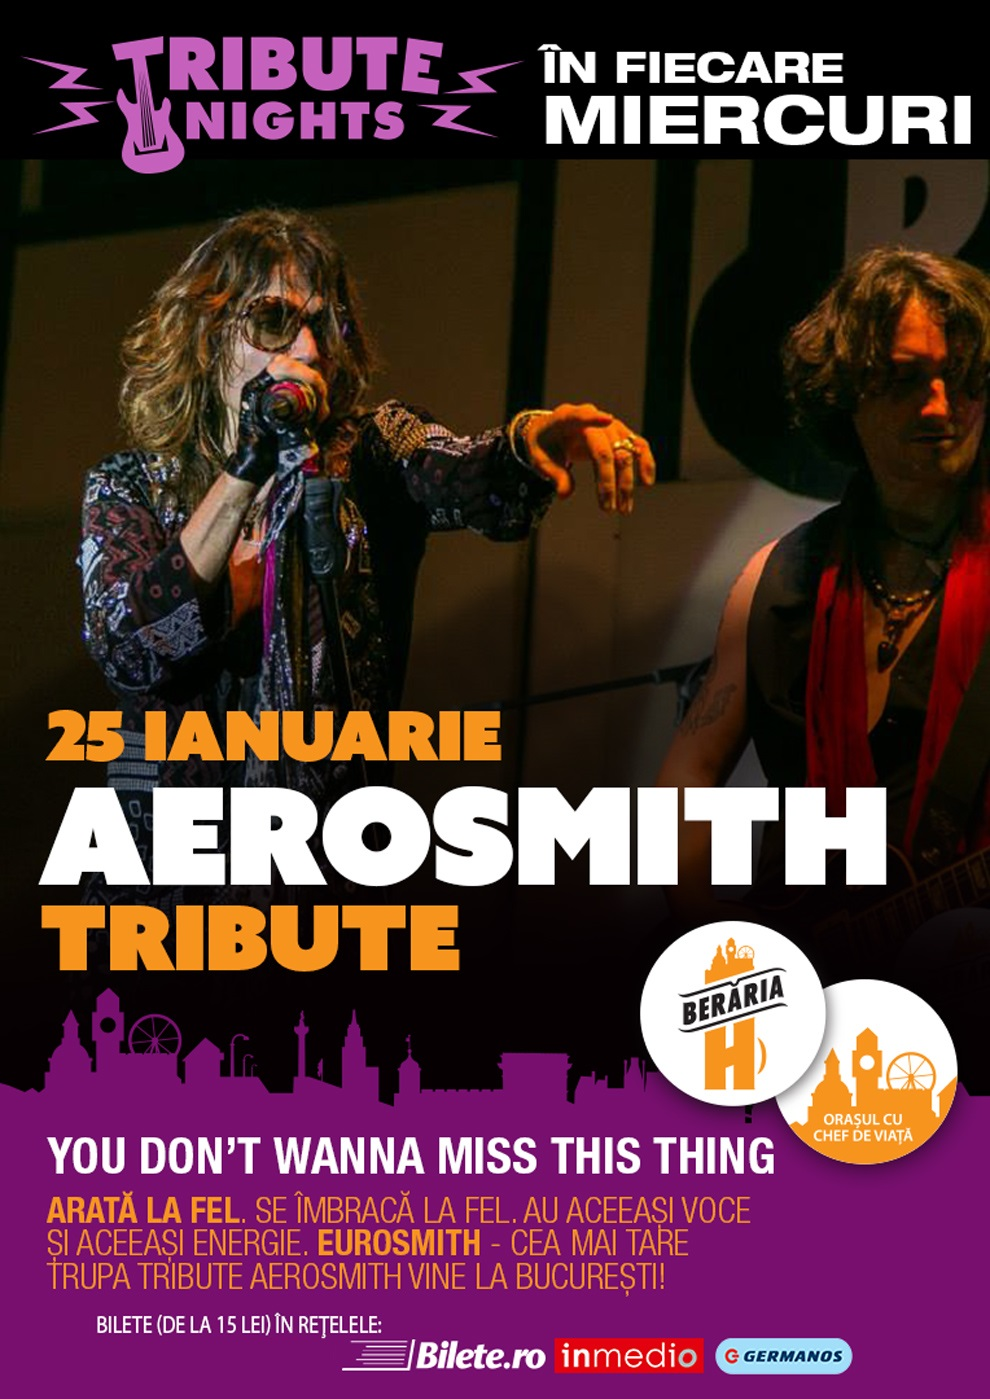 A Crazy Tribute to AEROSMITH